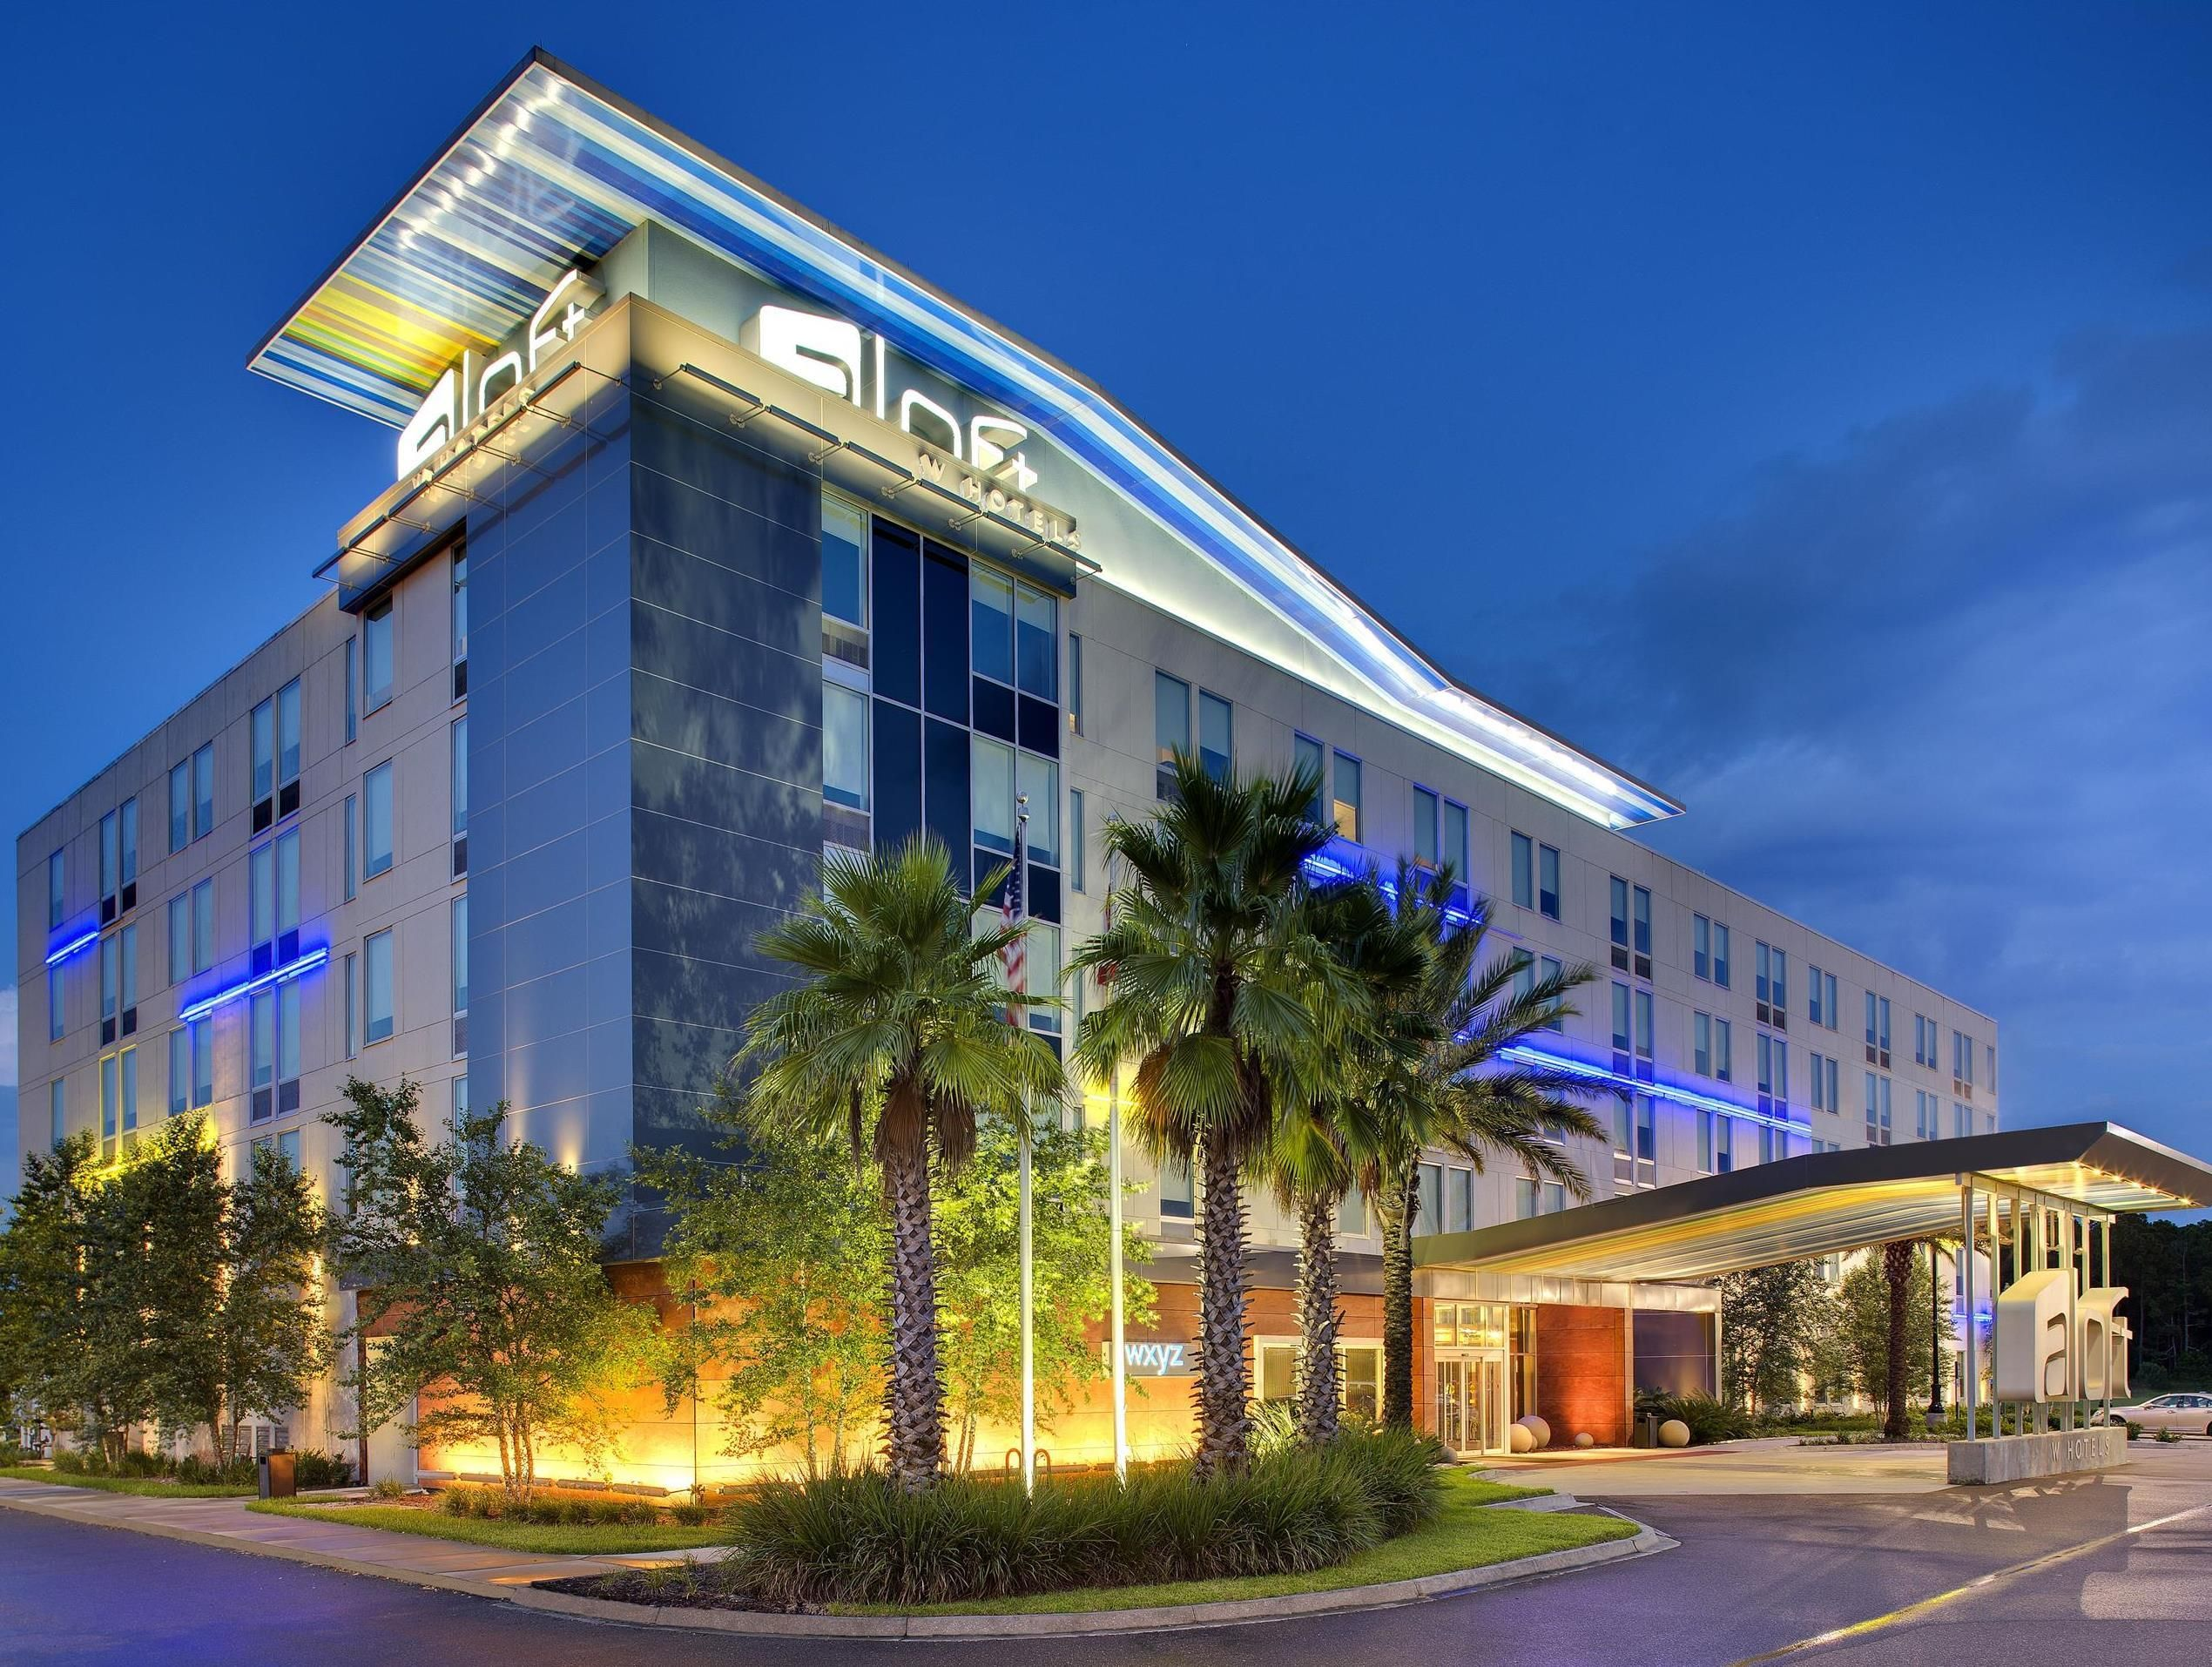 Jacksonville Fl Aloft Airport United States North America Is Conveniently Located In The Por Northside Area